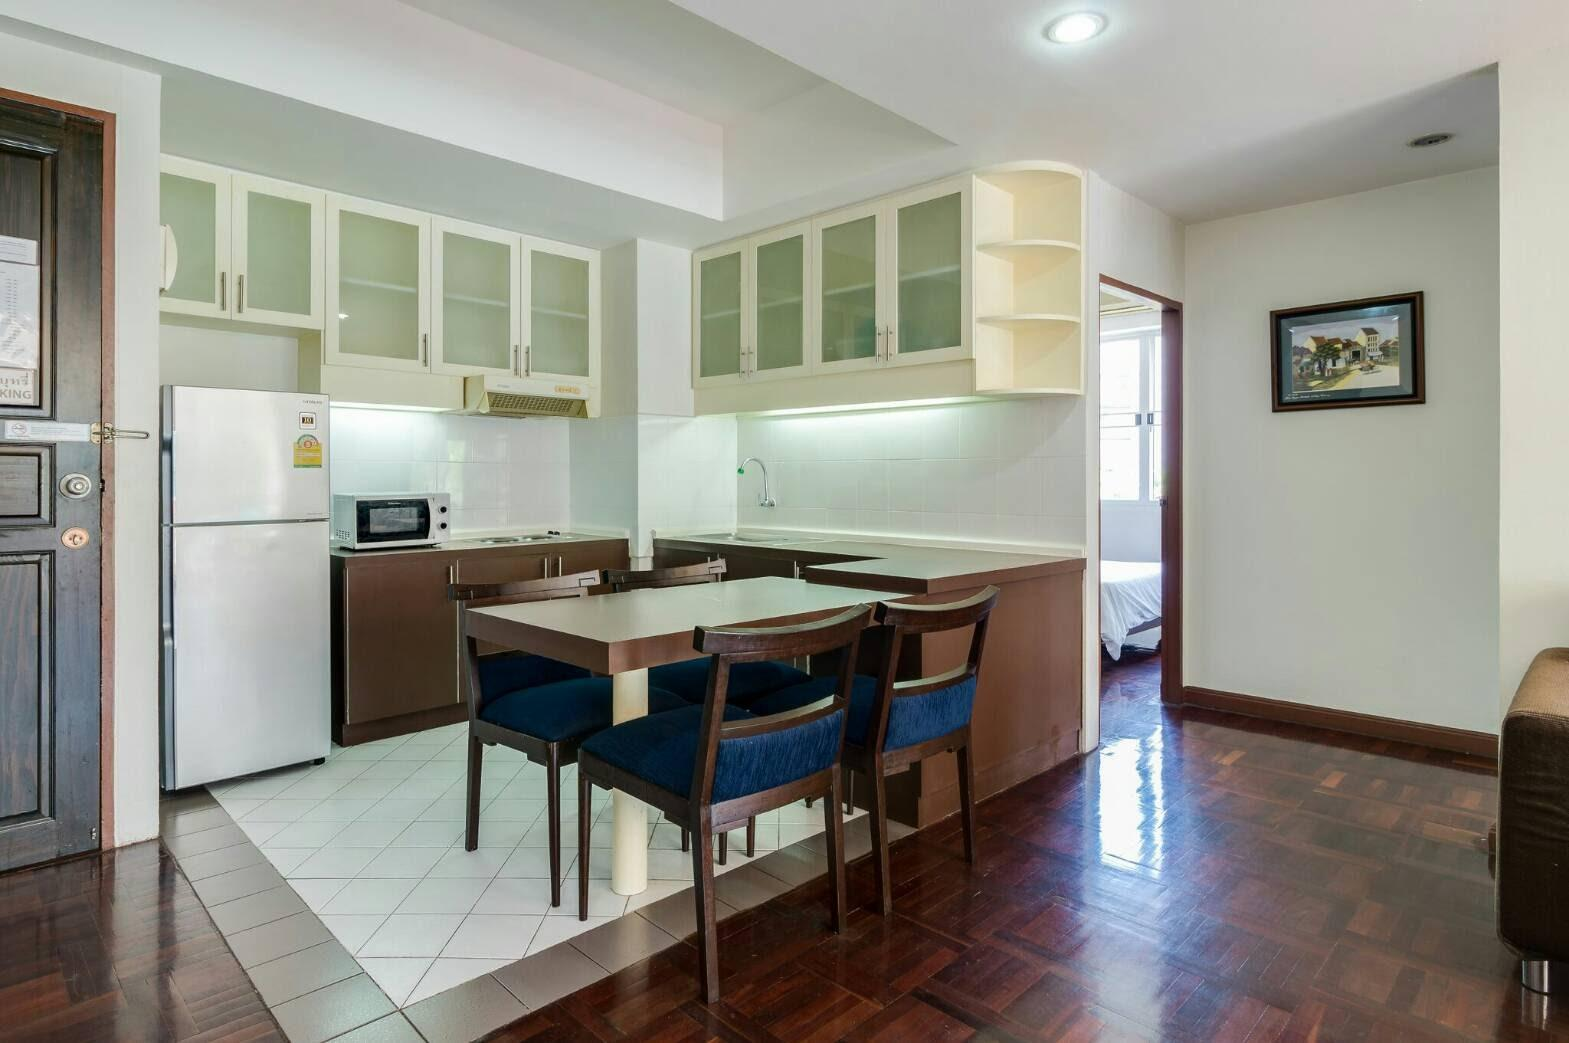 Review 80 sqm at Silom, 5mis from BTS Saladang MRT